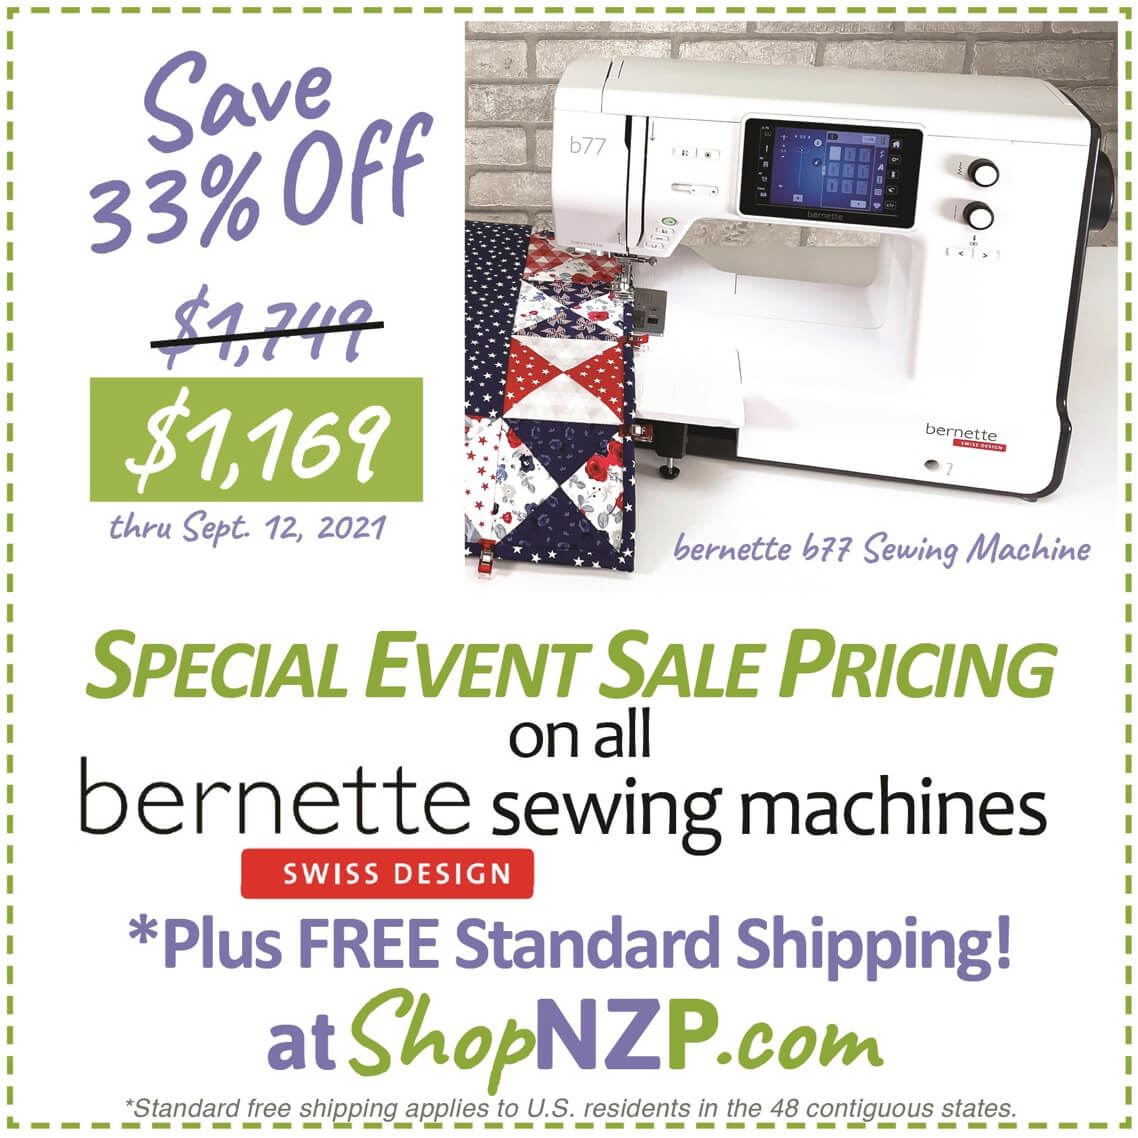 bernette sewing machines available at Nancy Zieman Productions at ShopNZP.com